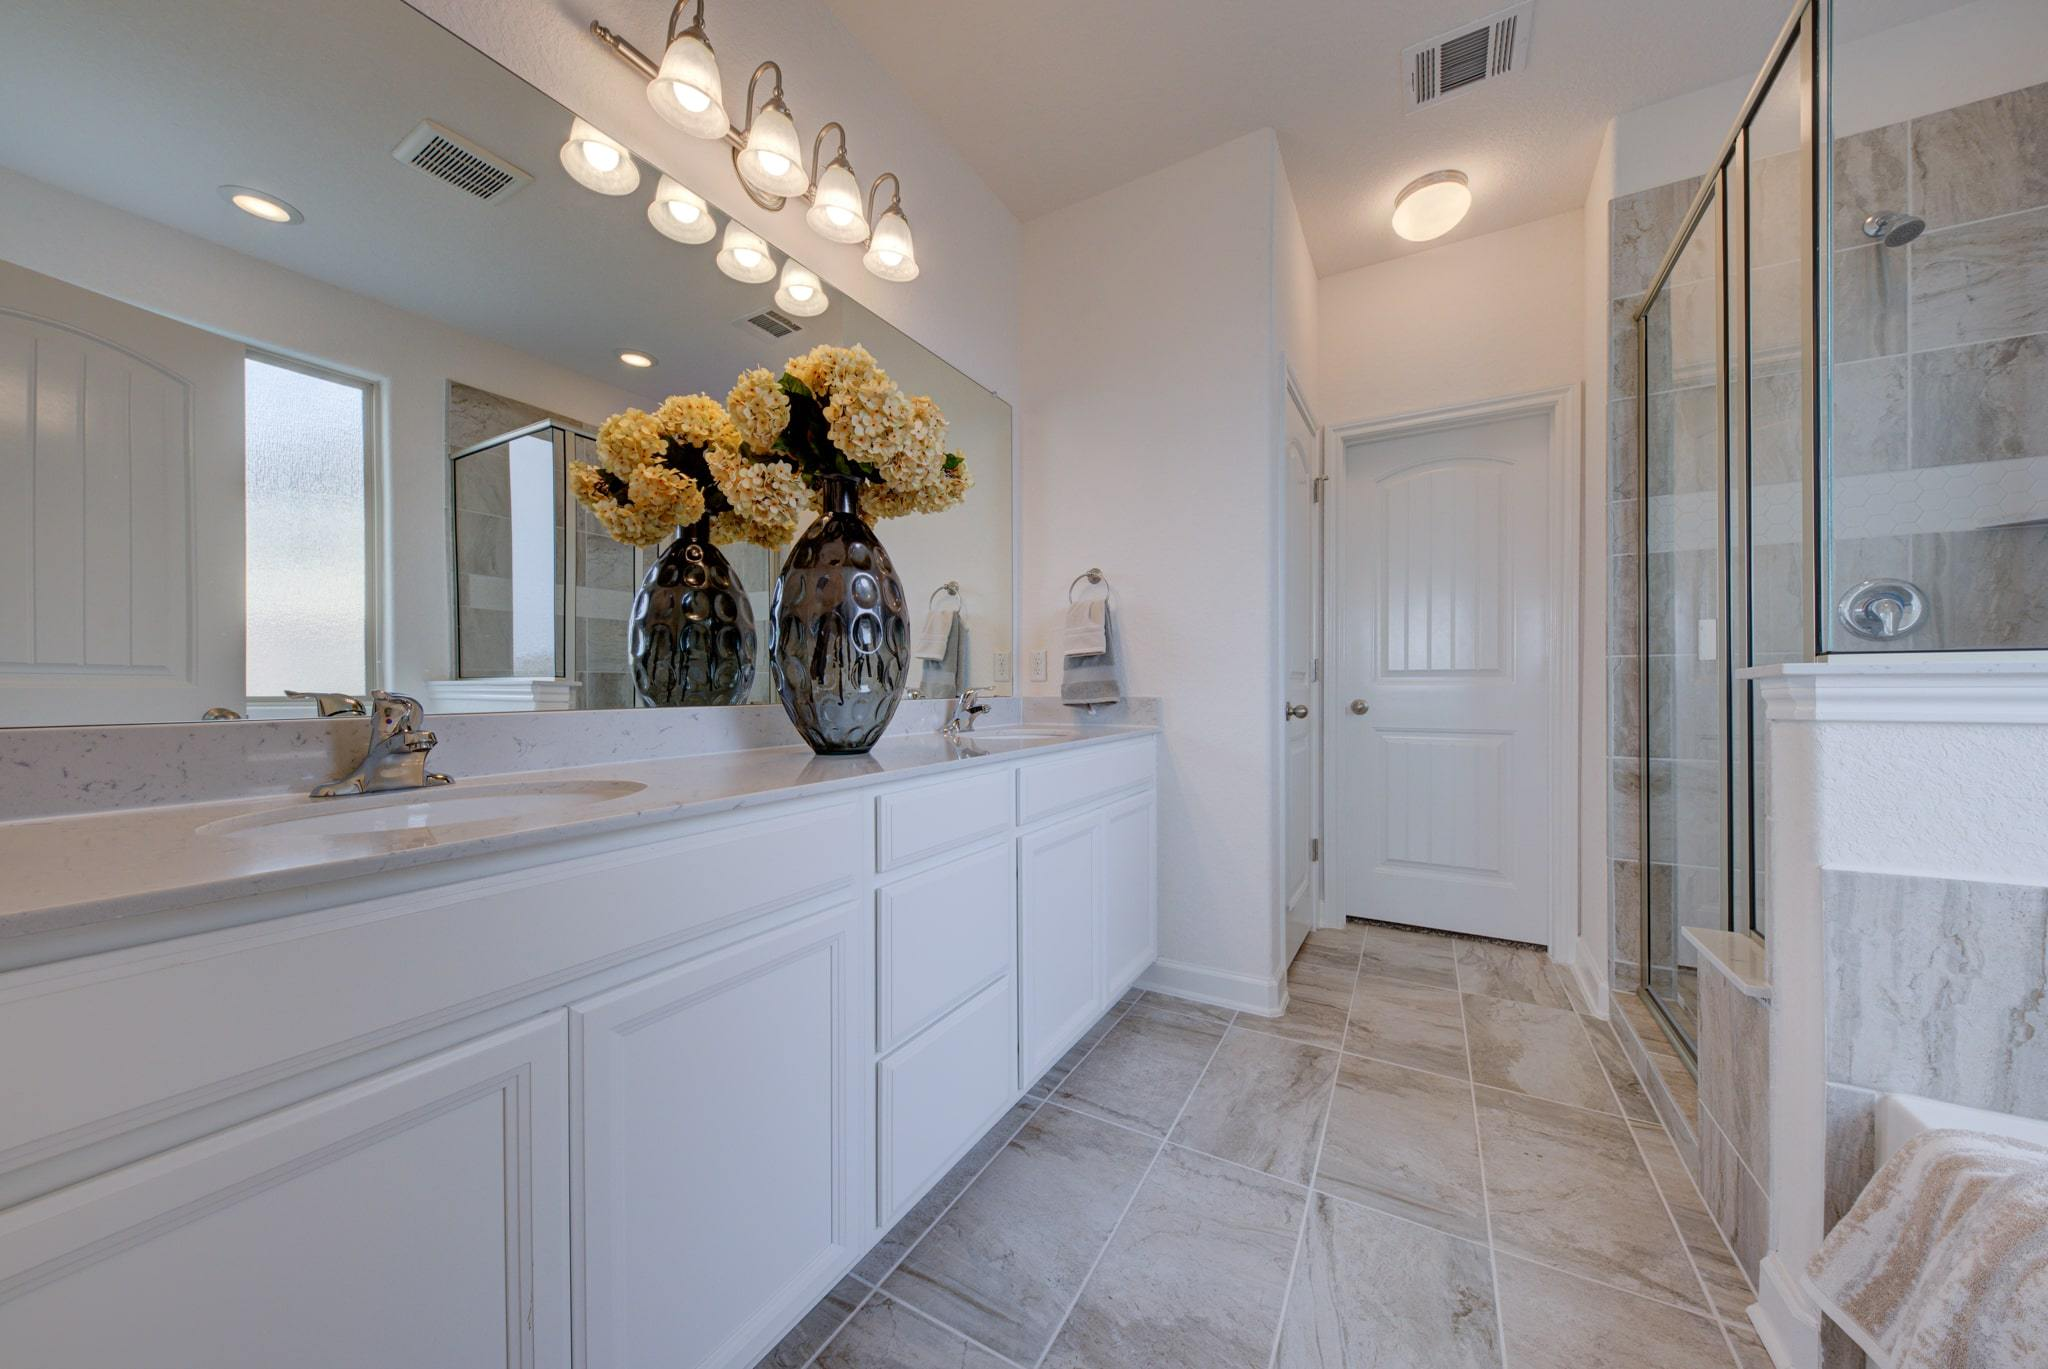 Bathroom featured in the Irving By Ashton Woods in San Antonio, TX